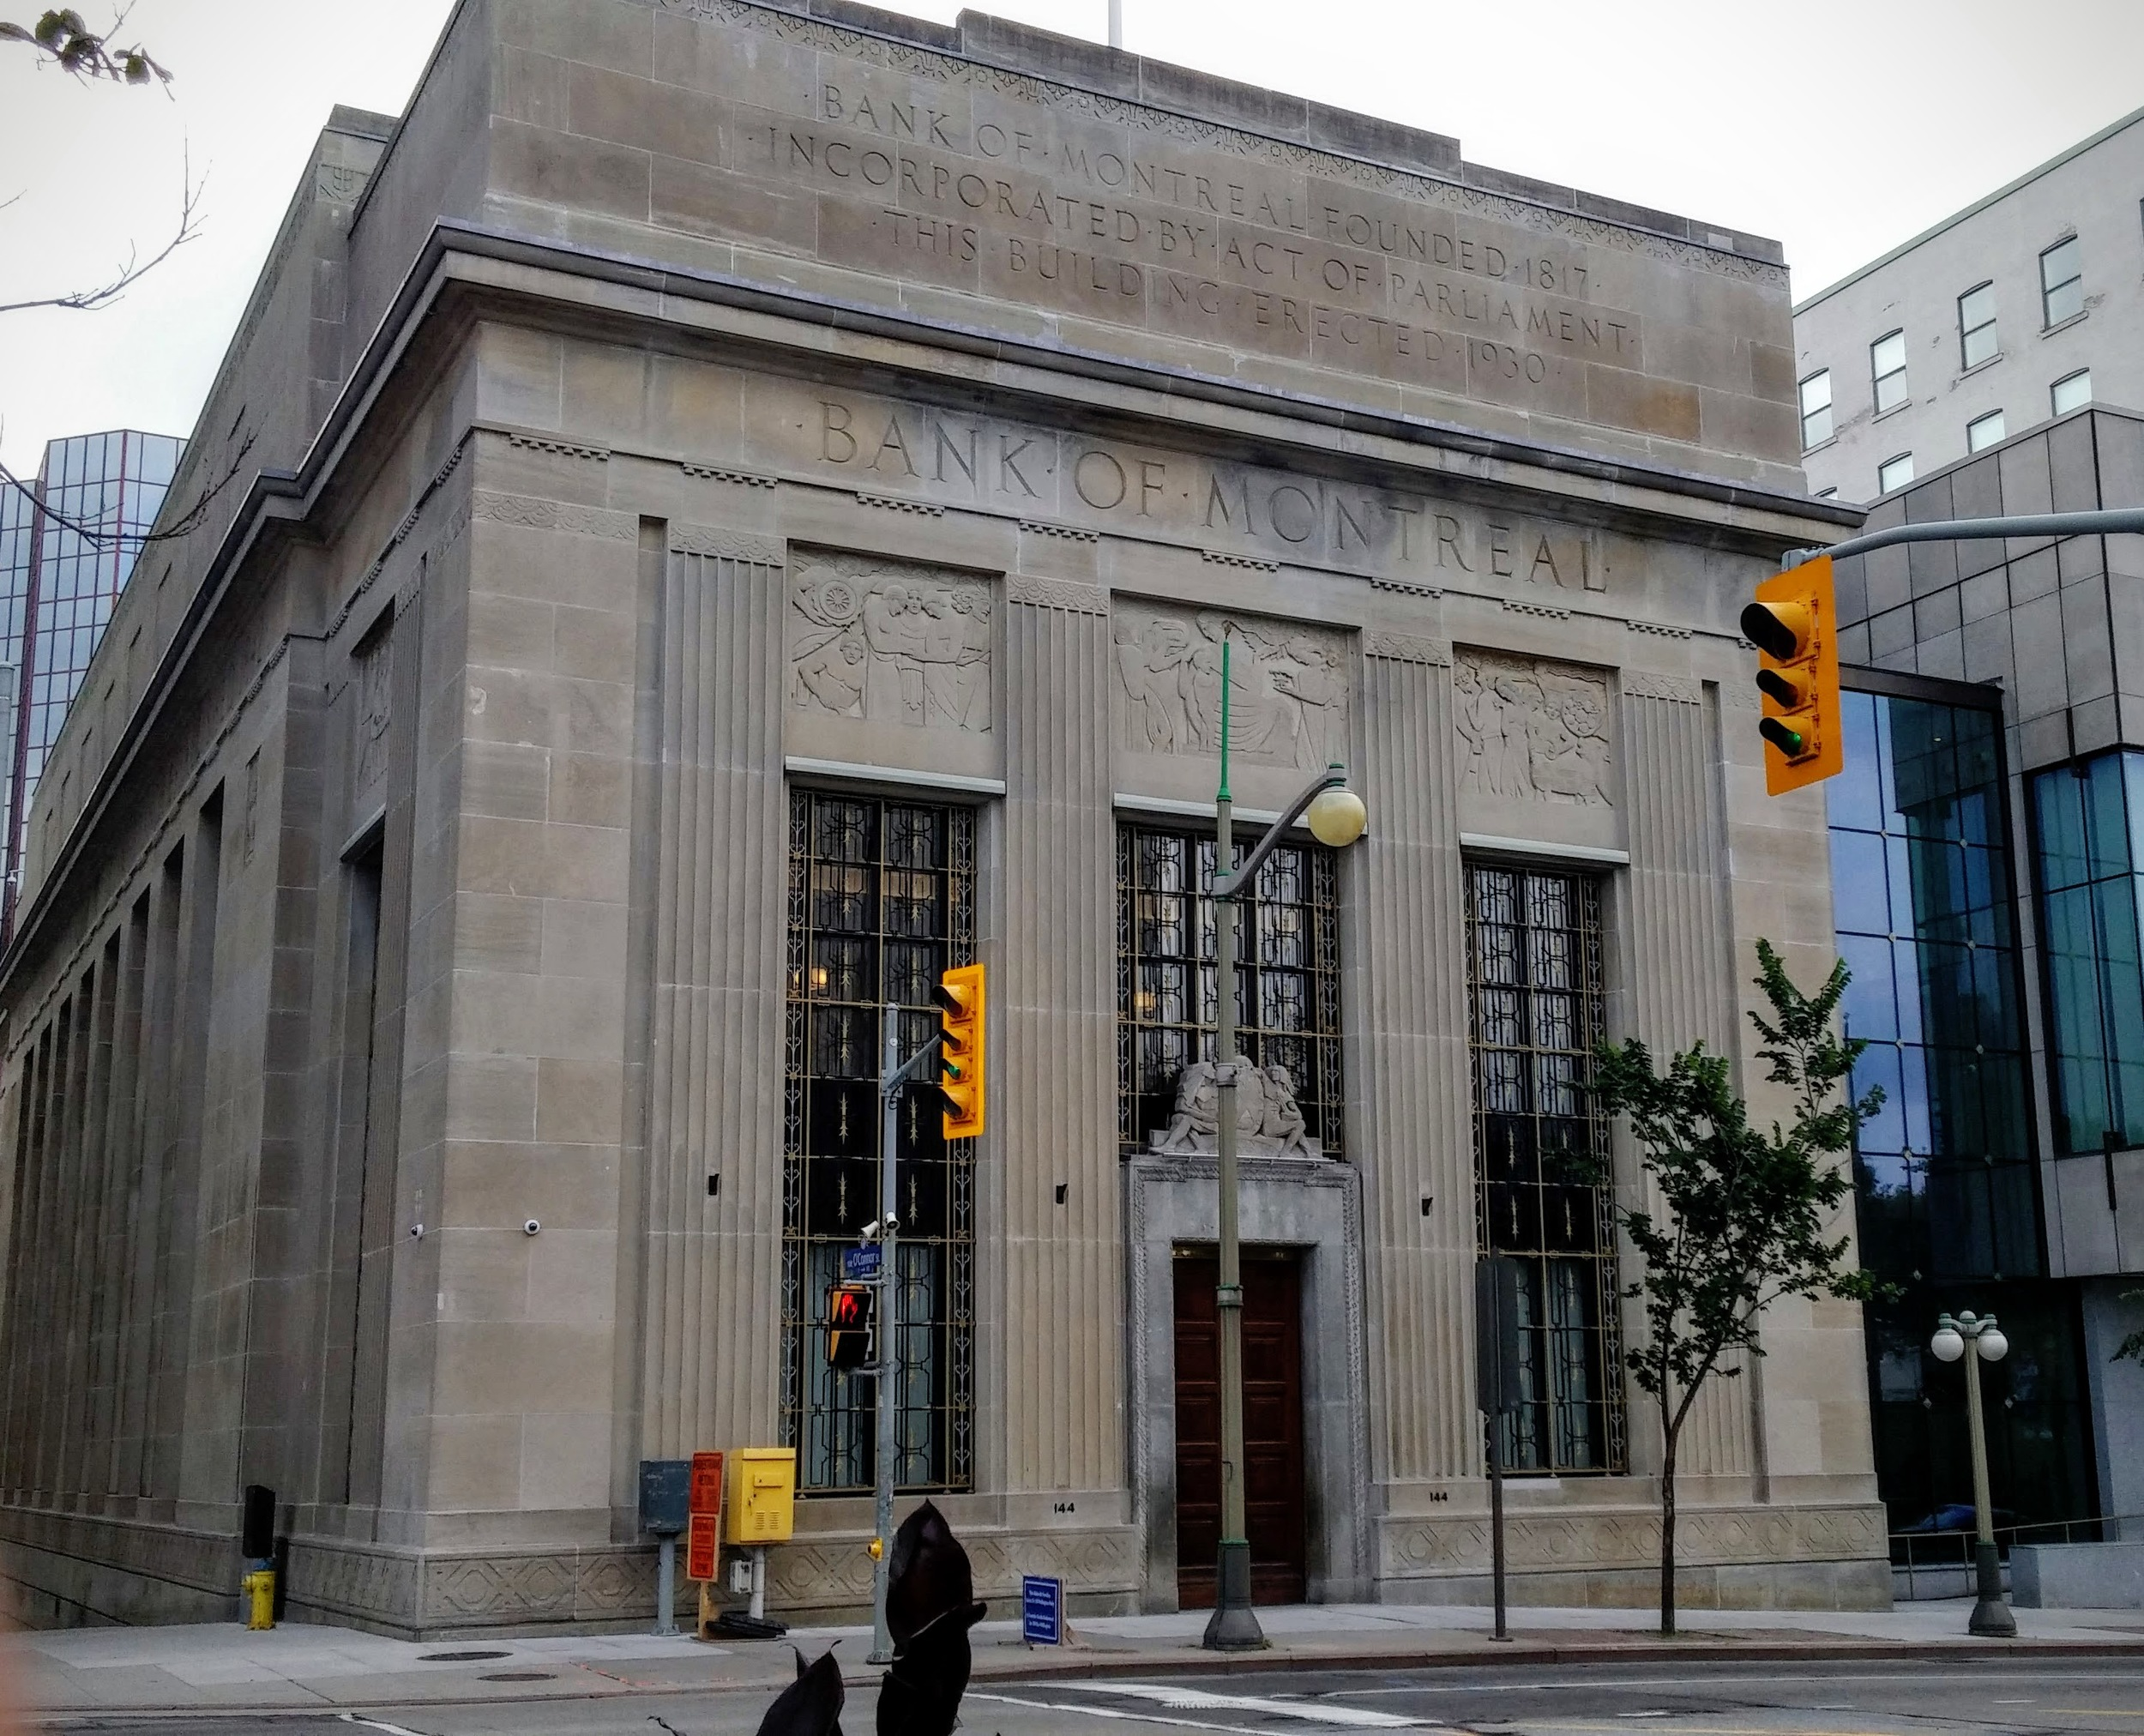 Bank of Montreal Ottawa